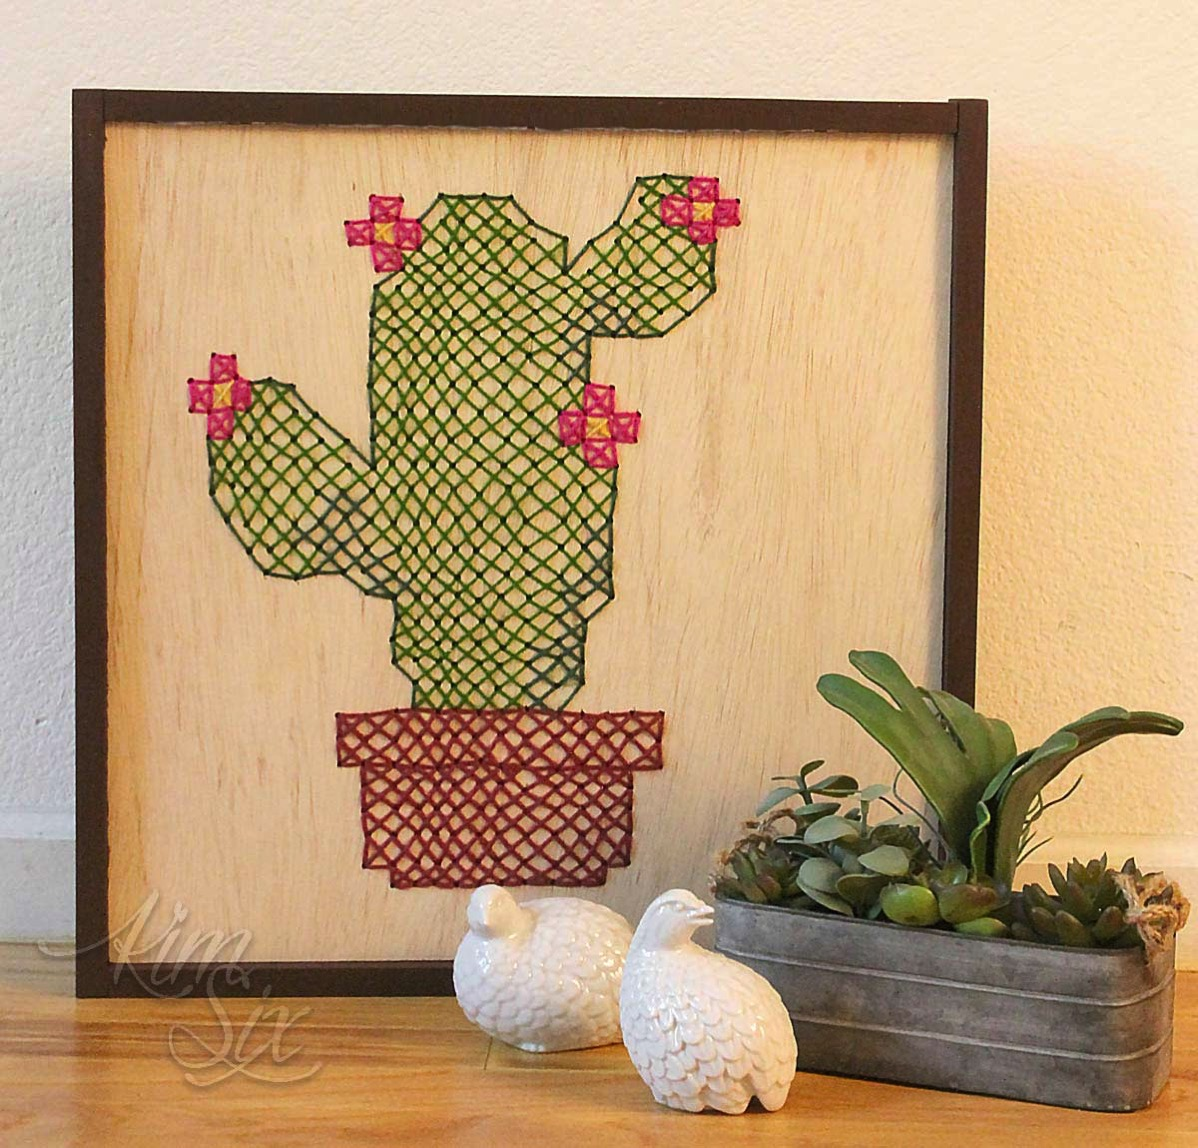 Cross stitched cactus on plywood